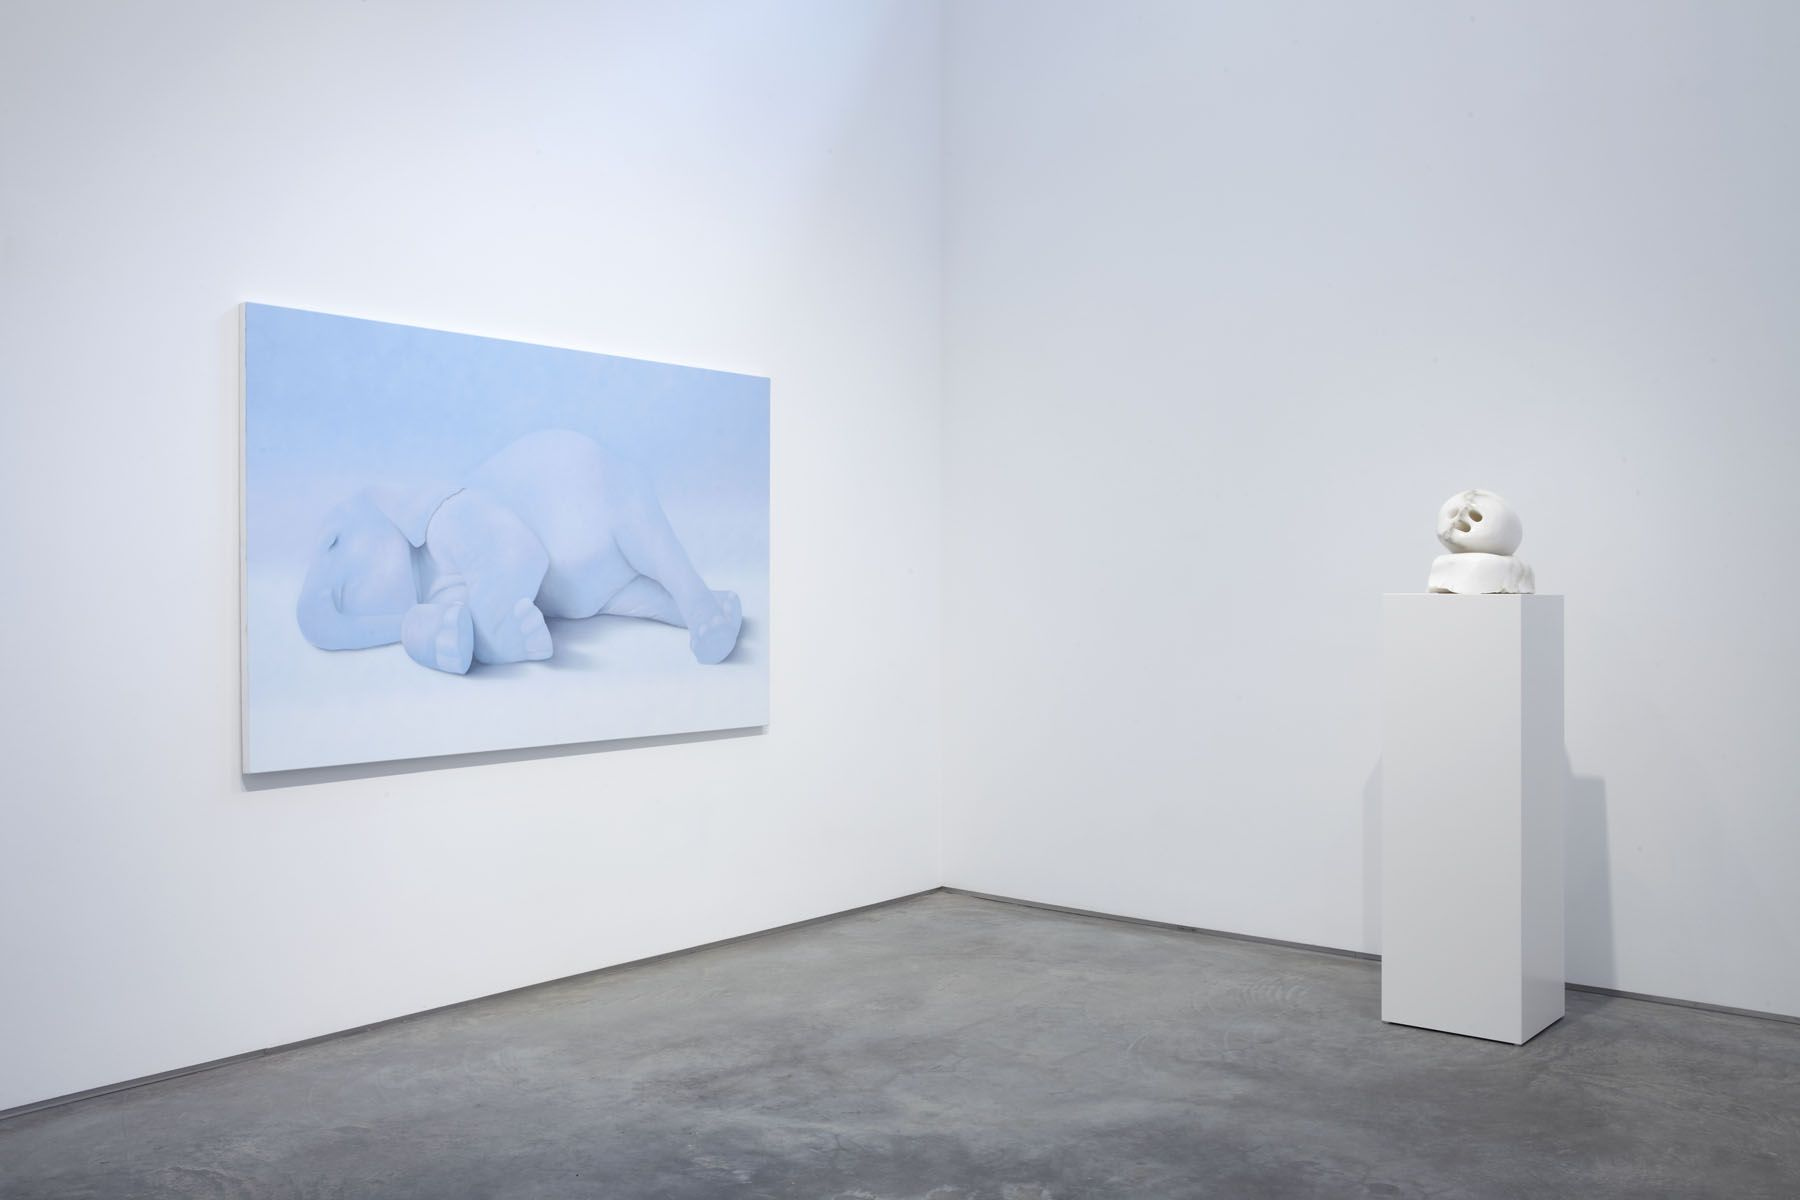 Memory is for the Living (Installation View), Marianne Boesky Gallery, 2010